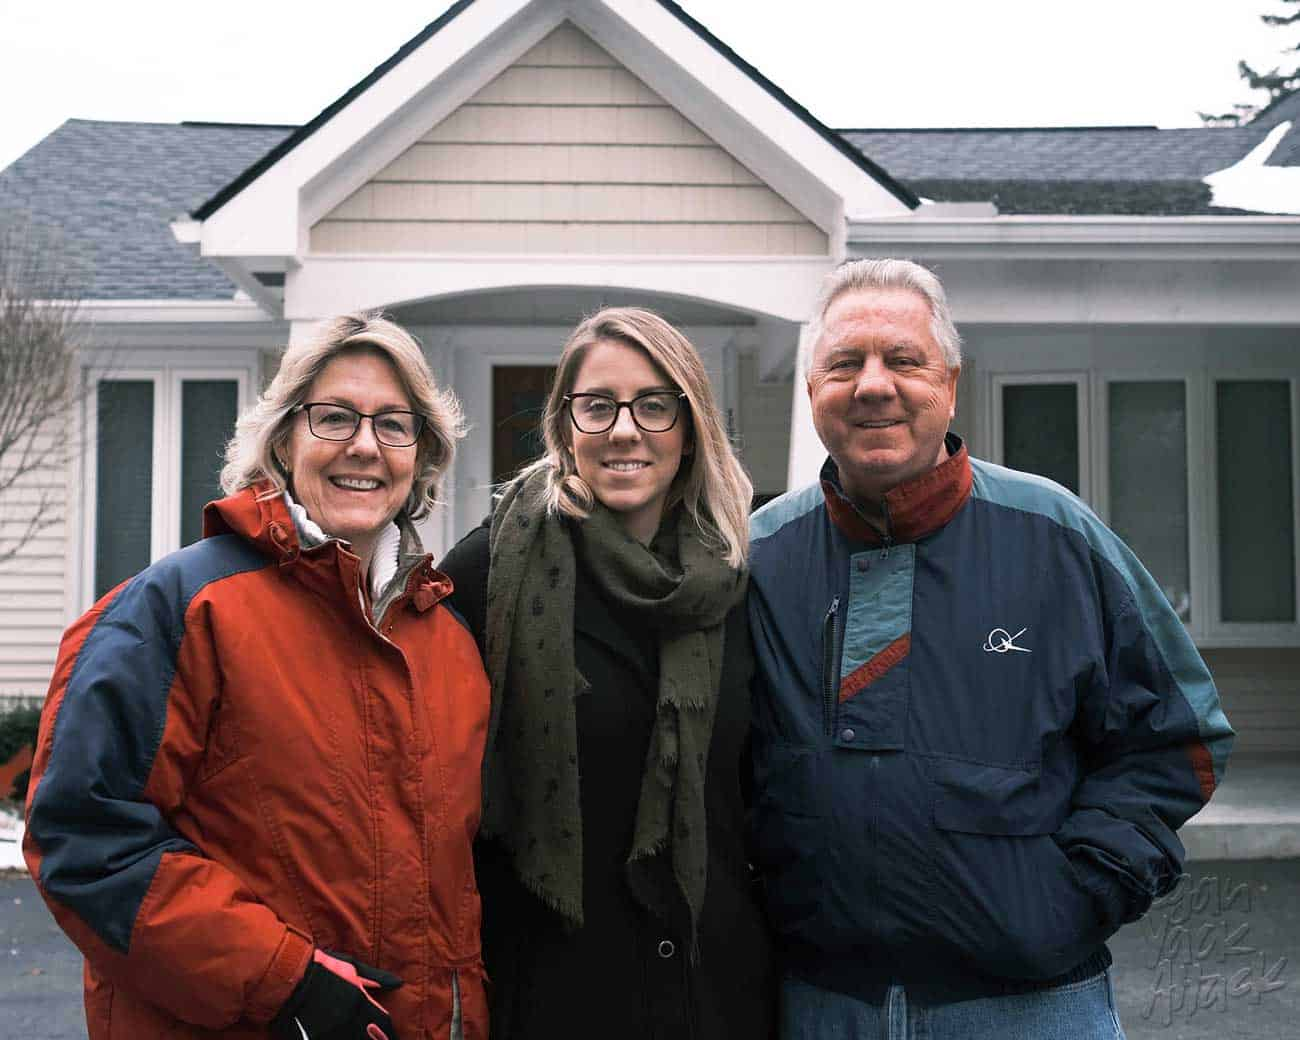 Three people pictured in front of a house in Michigan